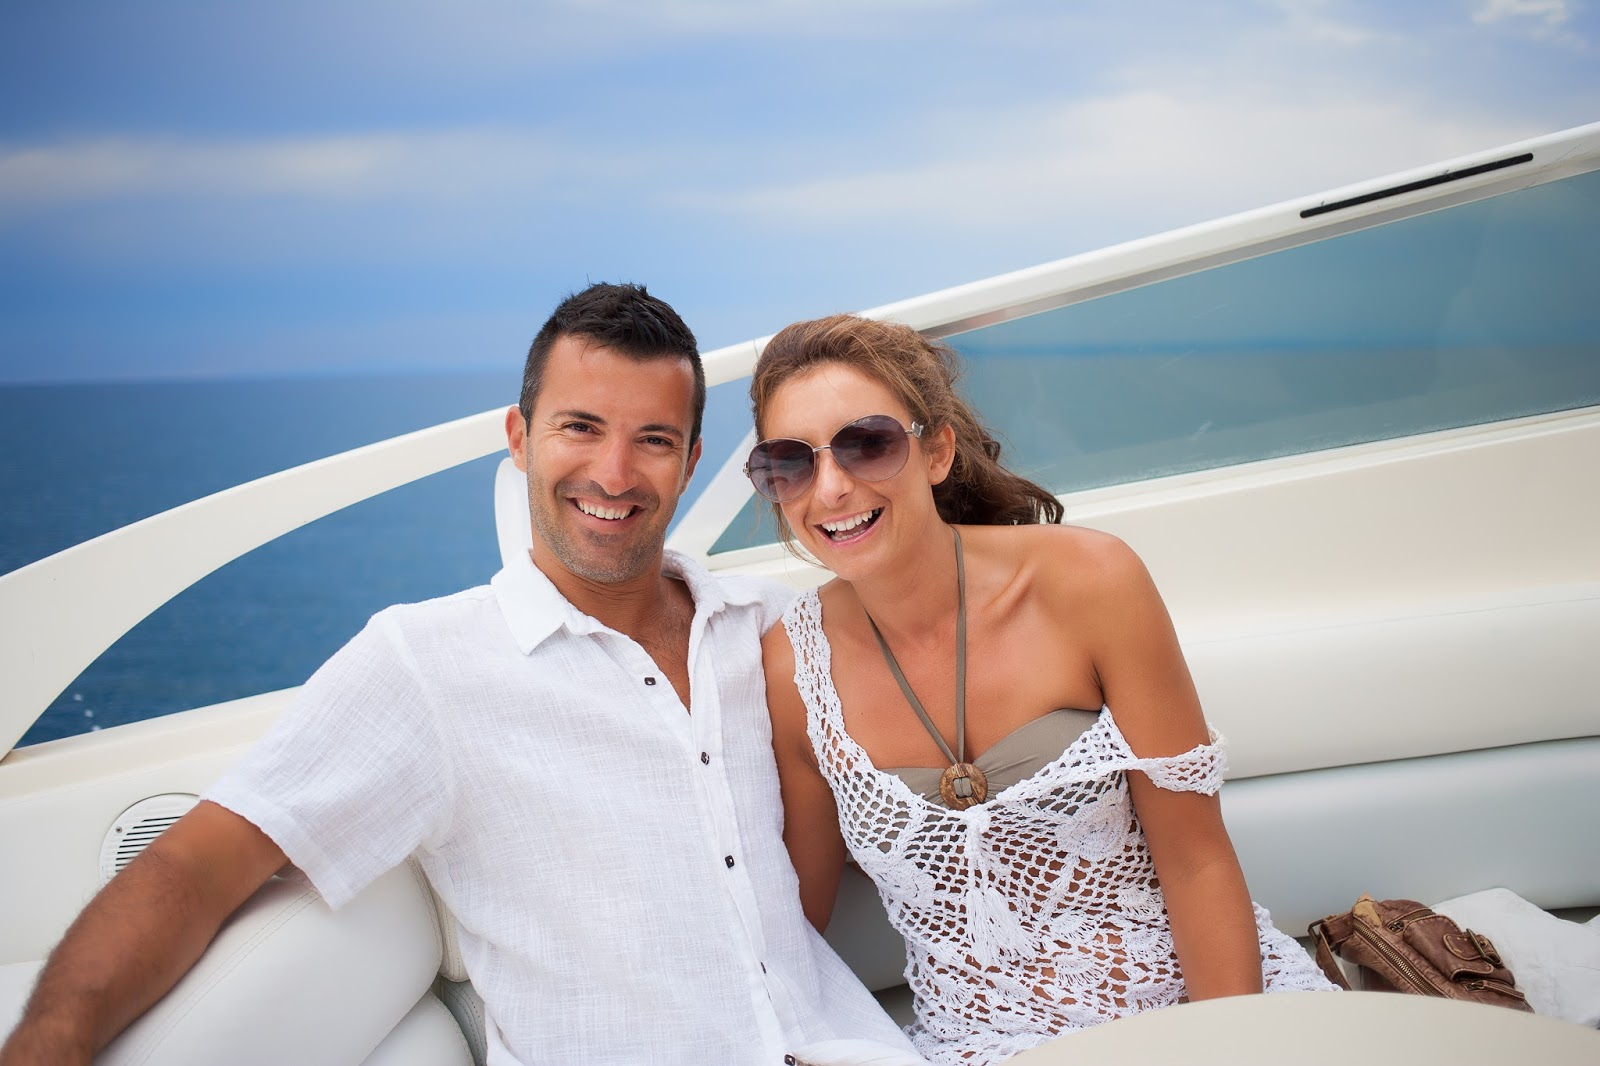 billionaire dating sites free Dating a billionaire - visit the most popular and simplest online dating site to flirt, chart, or date with interesting people online, sign up for free.